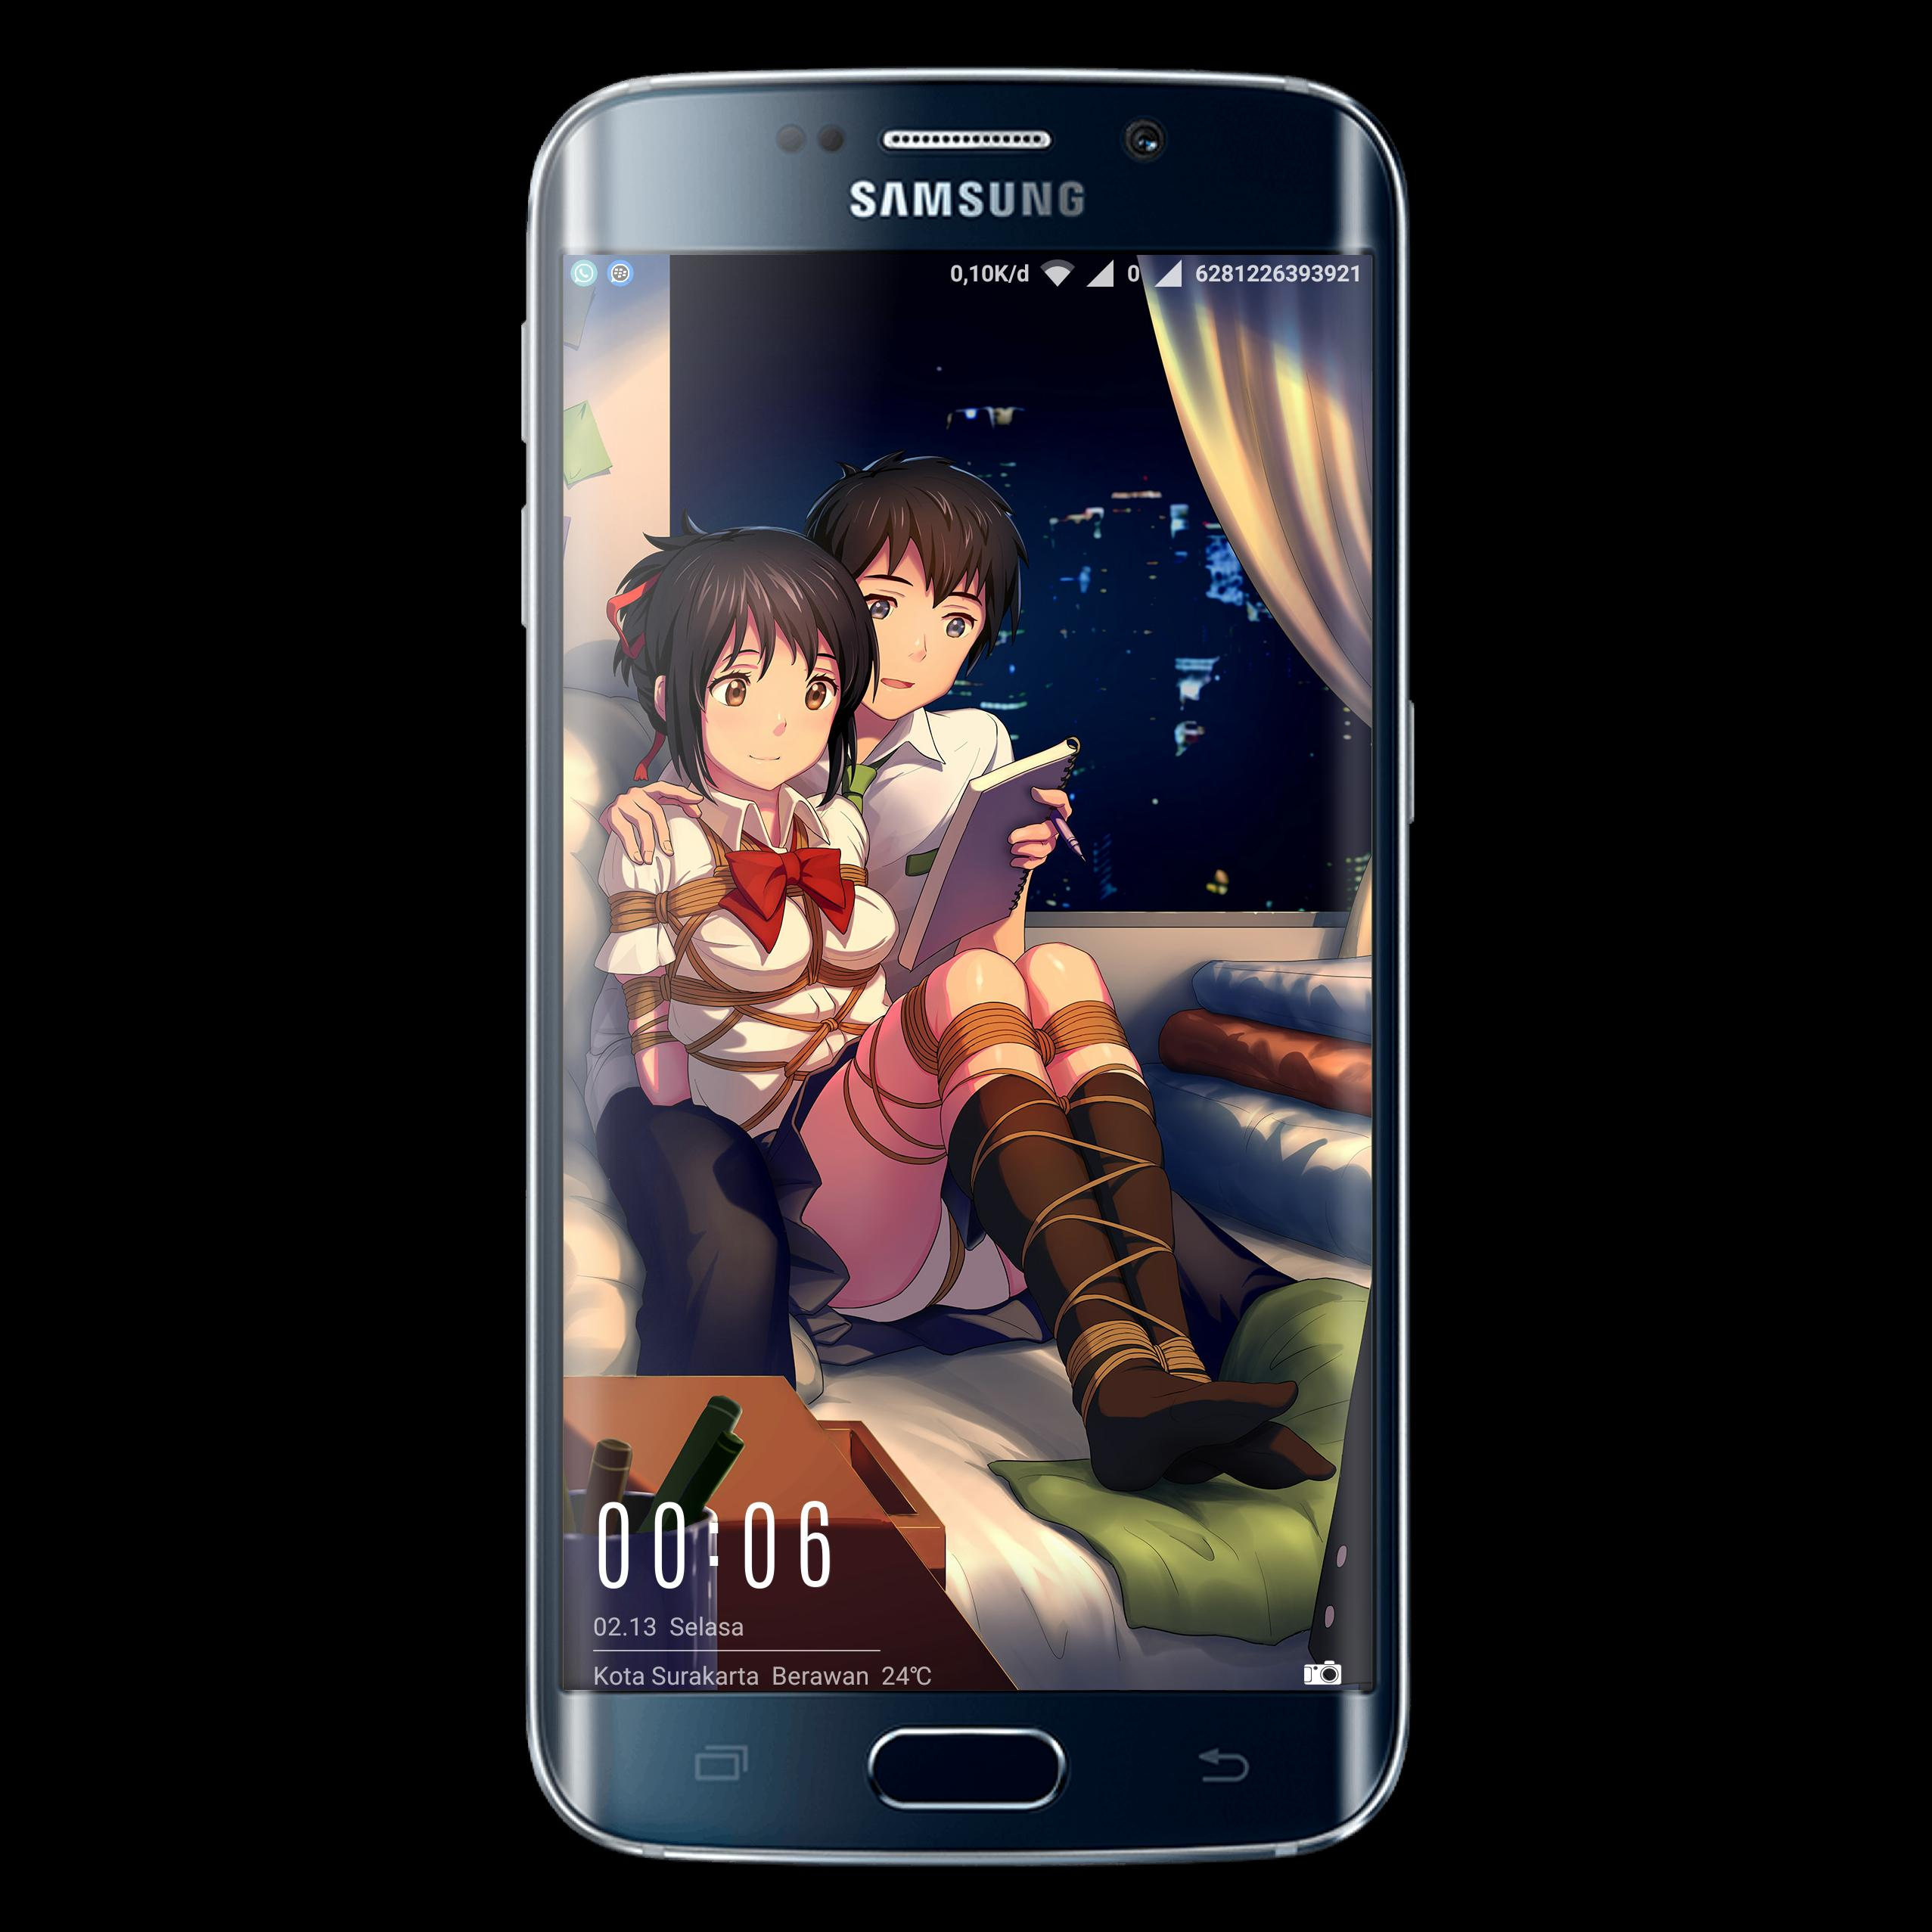 Kimi No Nawa Your Name Wallpaper For Android Apk Download